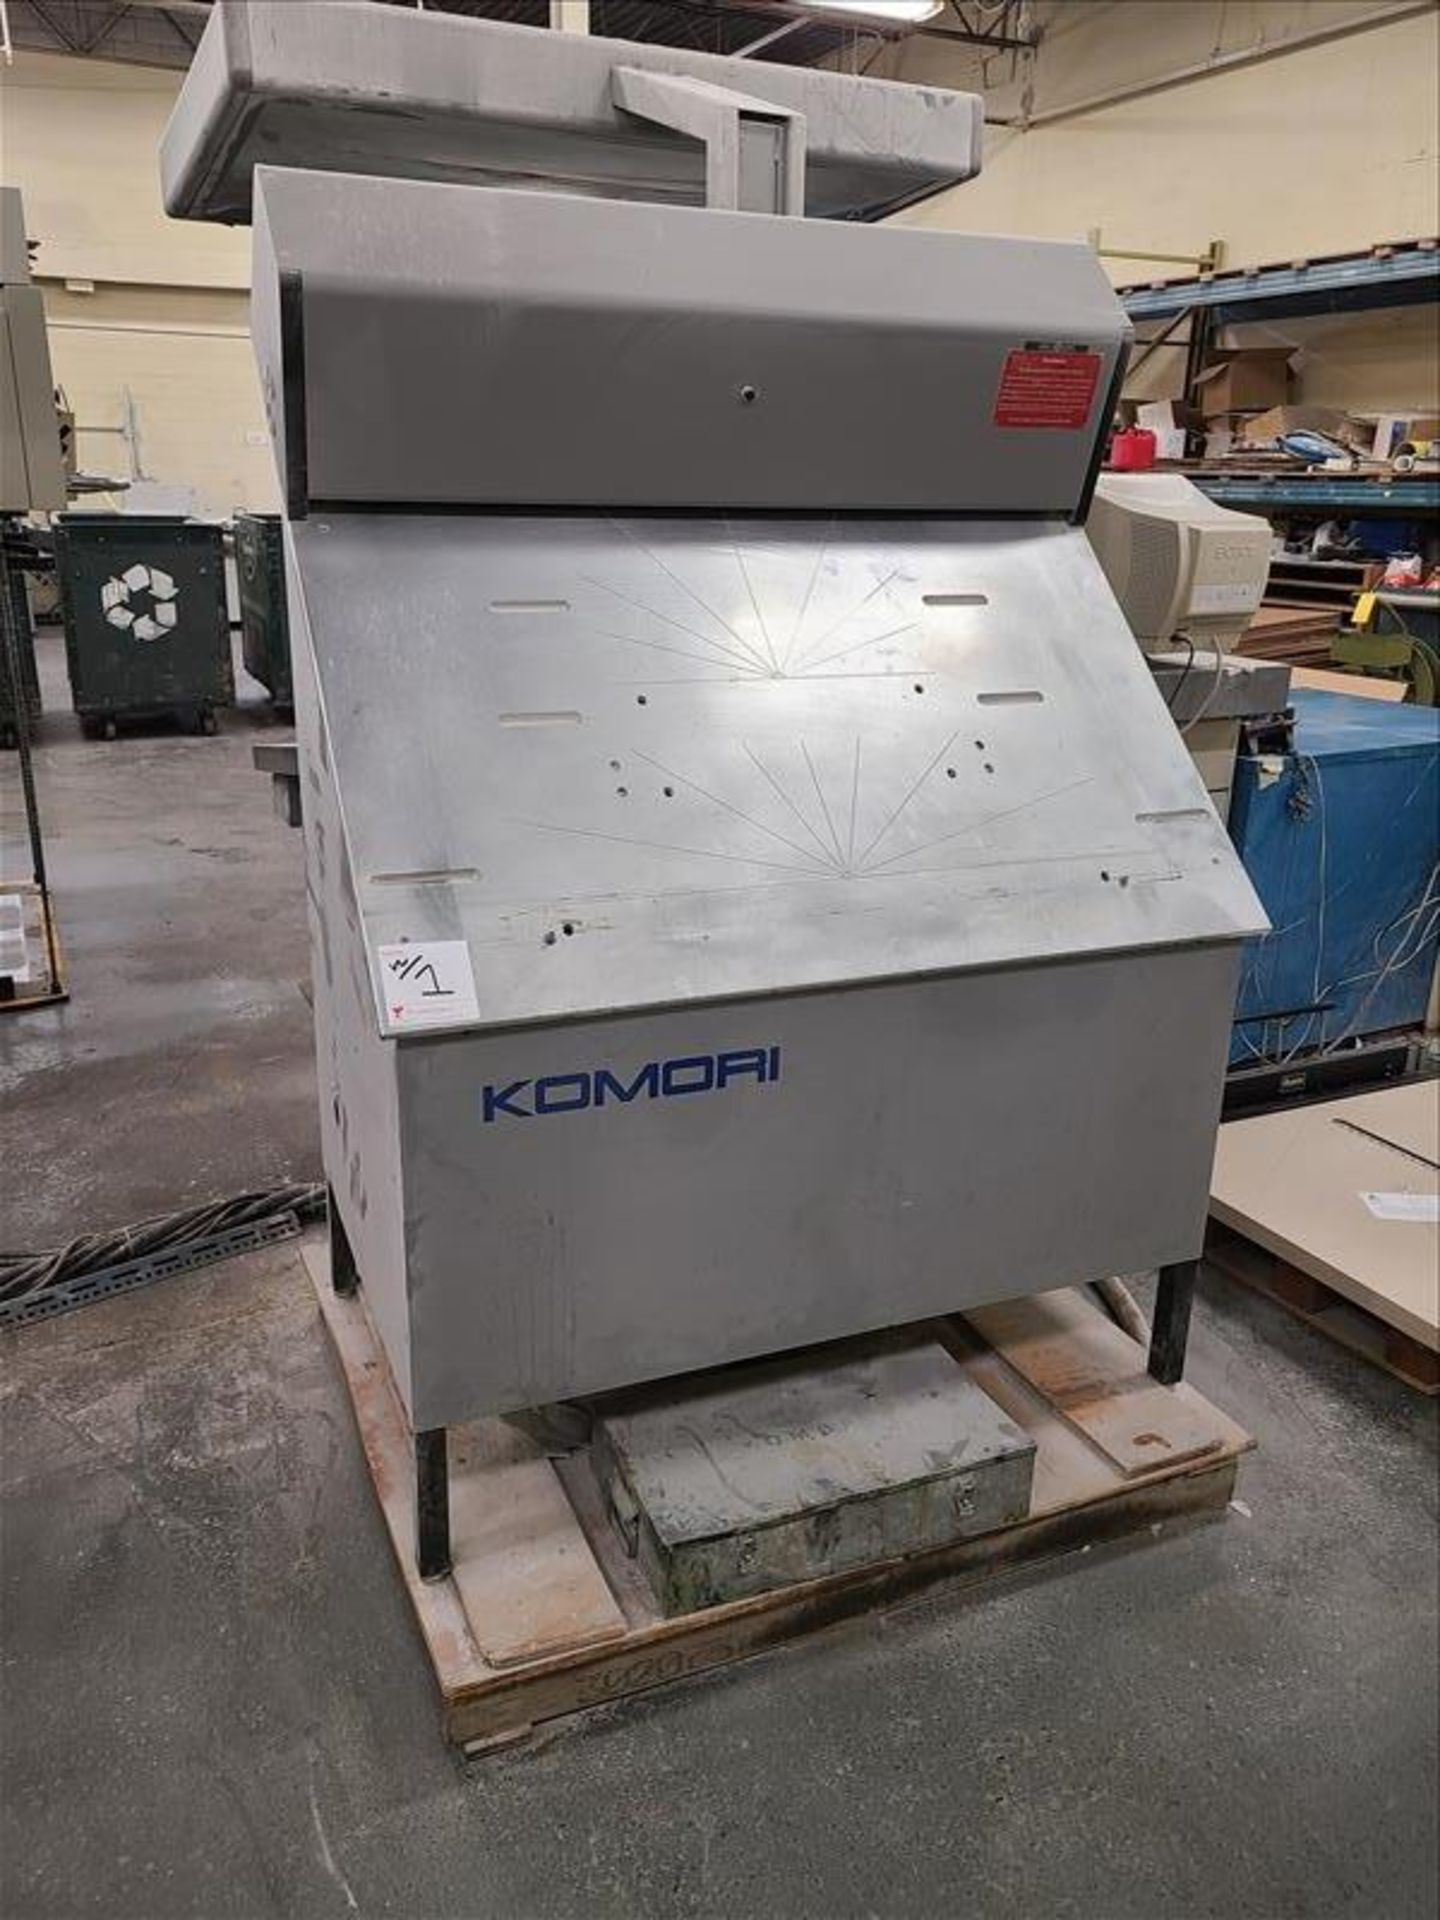 Komori 4-color offset printing press, Series Lithrone 40, model L-440, S/N.2202 approx. 68 - Image 12 of 22